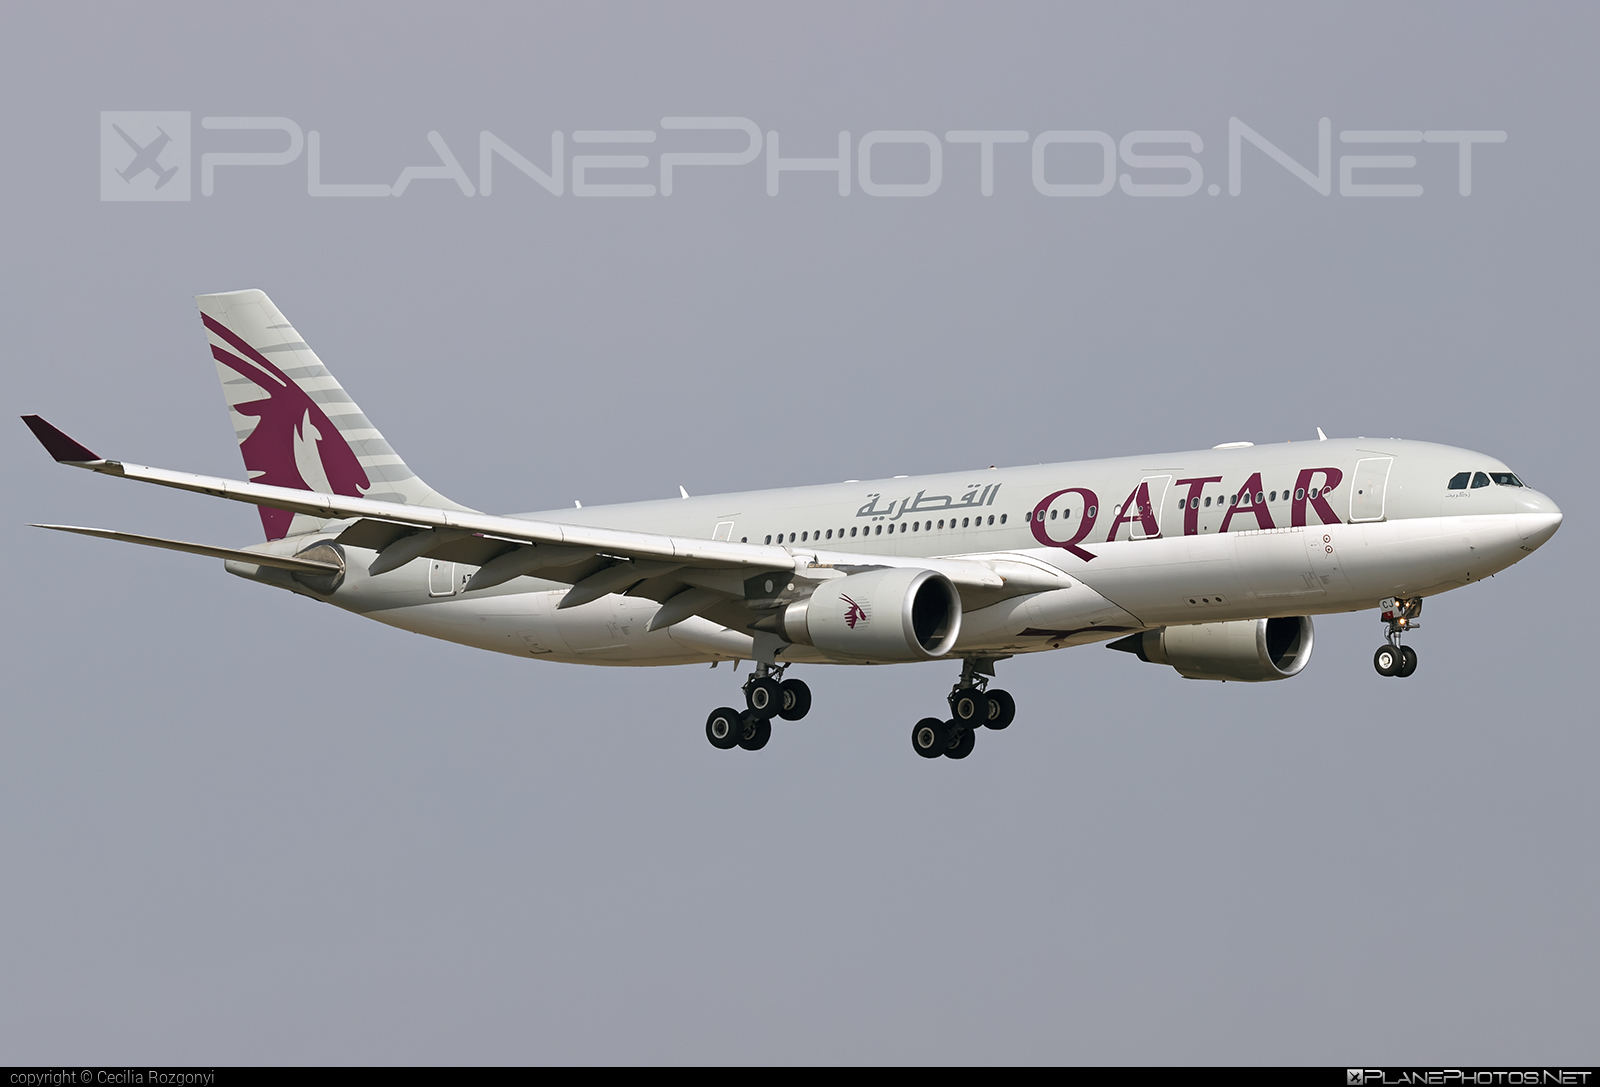 Airbus A330-202 - A7-ACJ operated by Qatar Airways #a330 #a330family #airbus #airbus330 #qatarairways